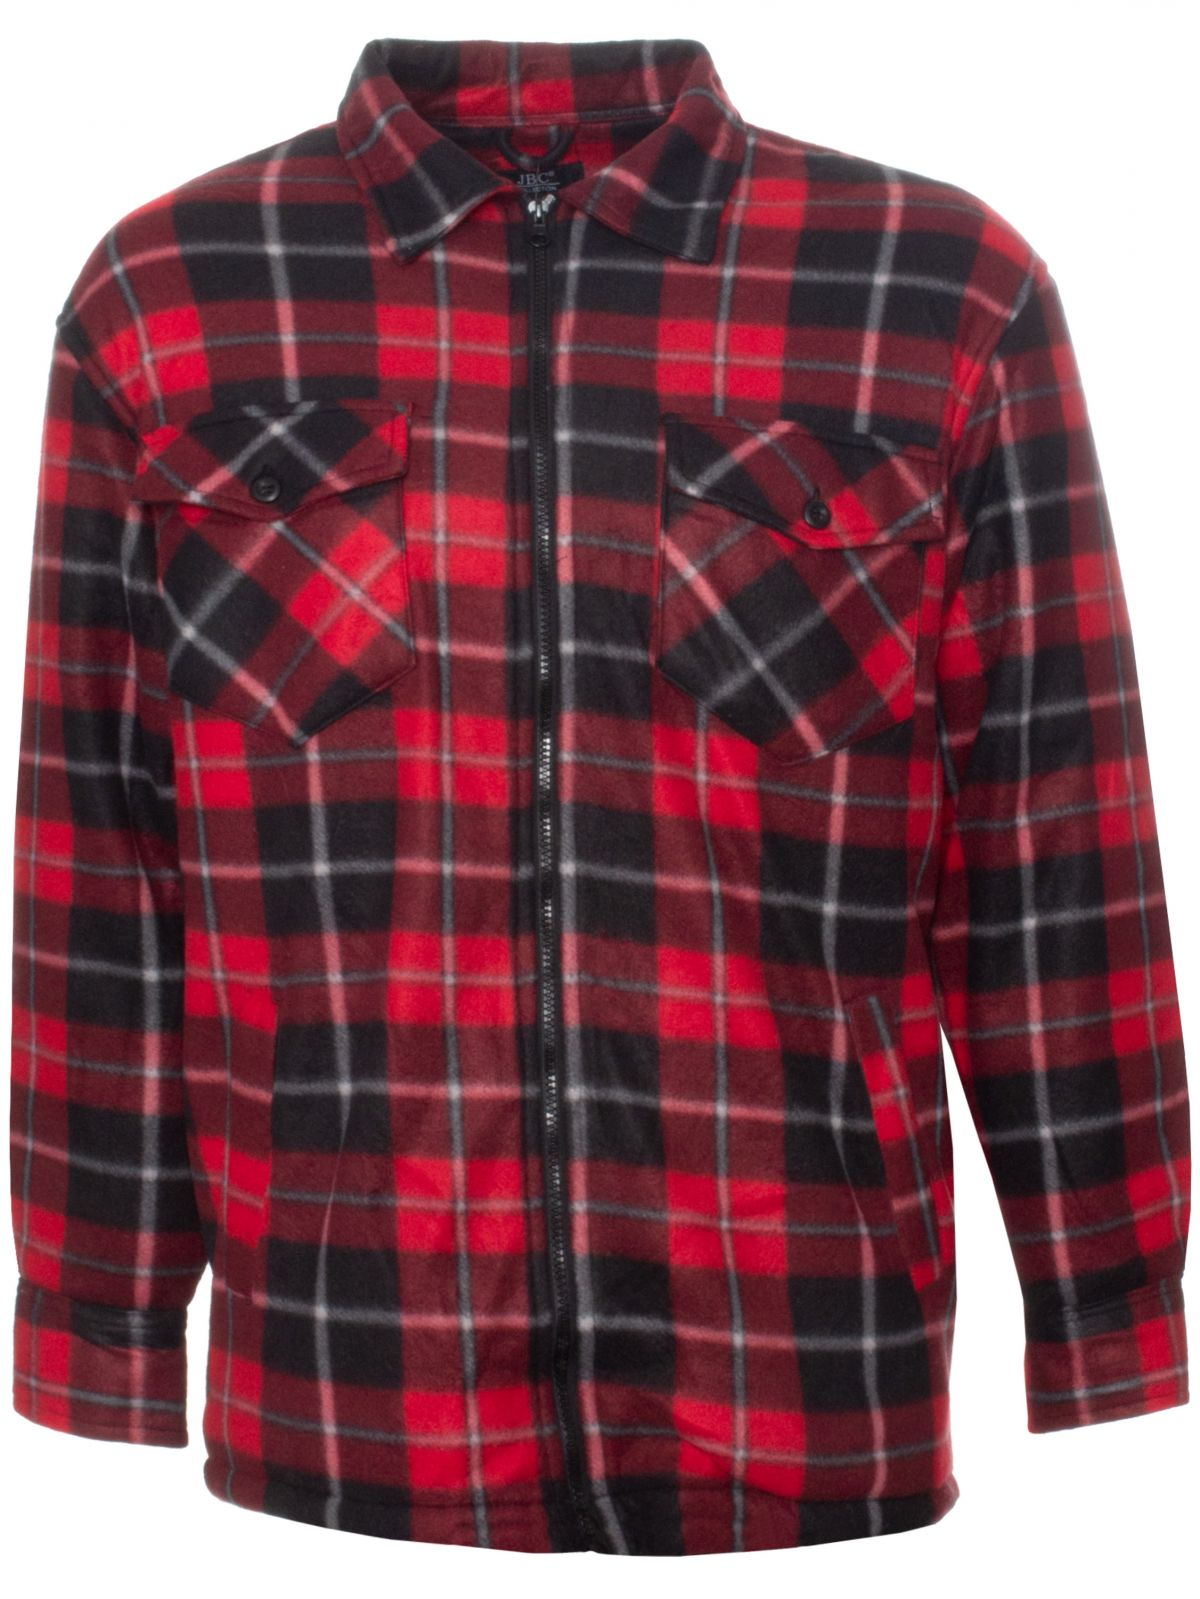 Men's Flannel Faux Fur Lined Thick Fleece Shirt